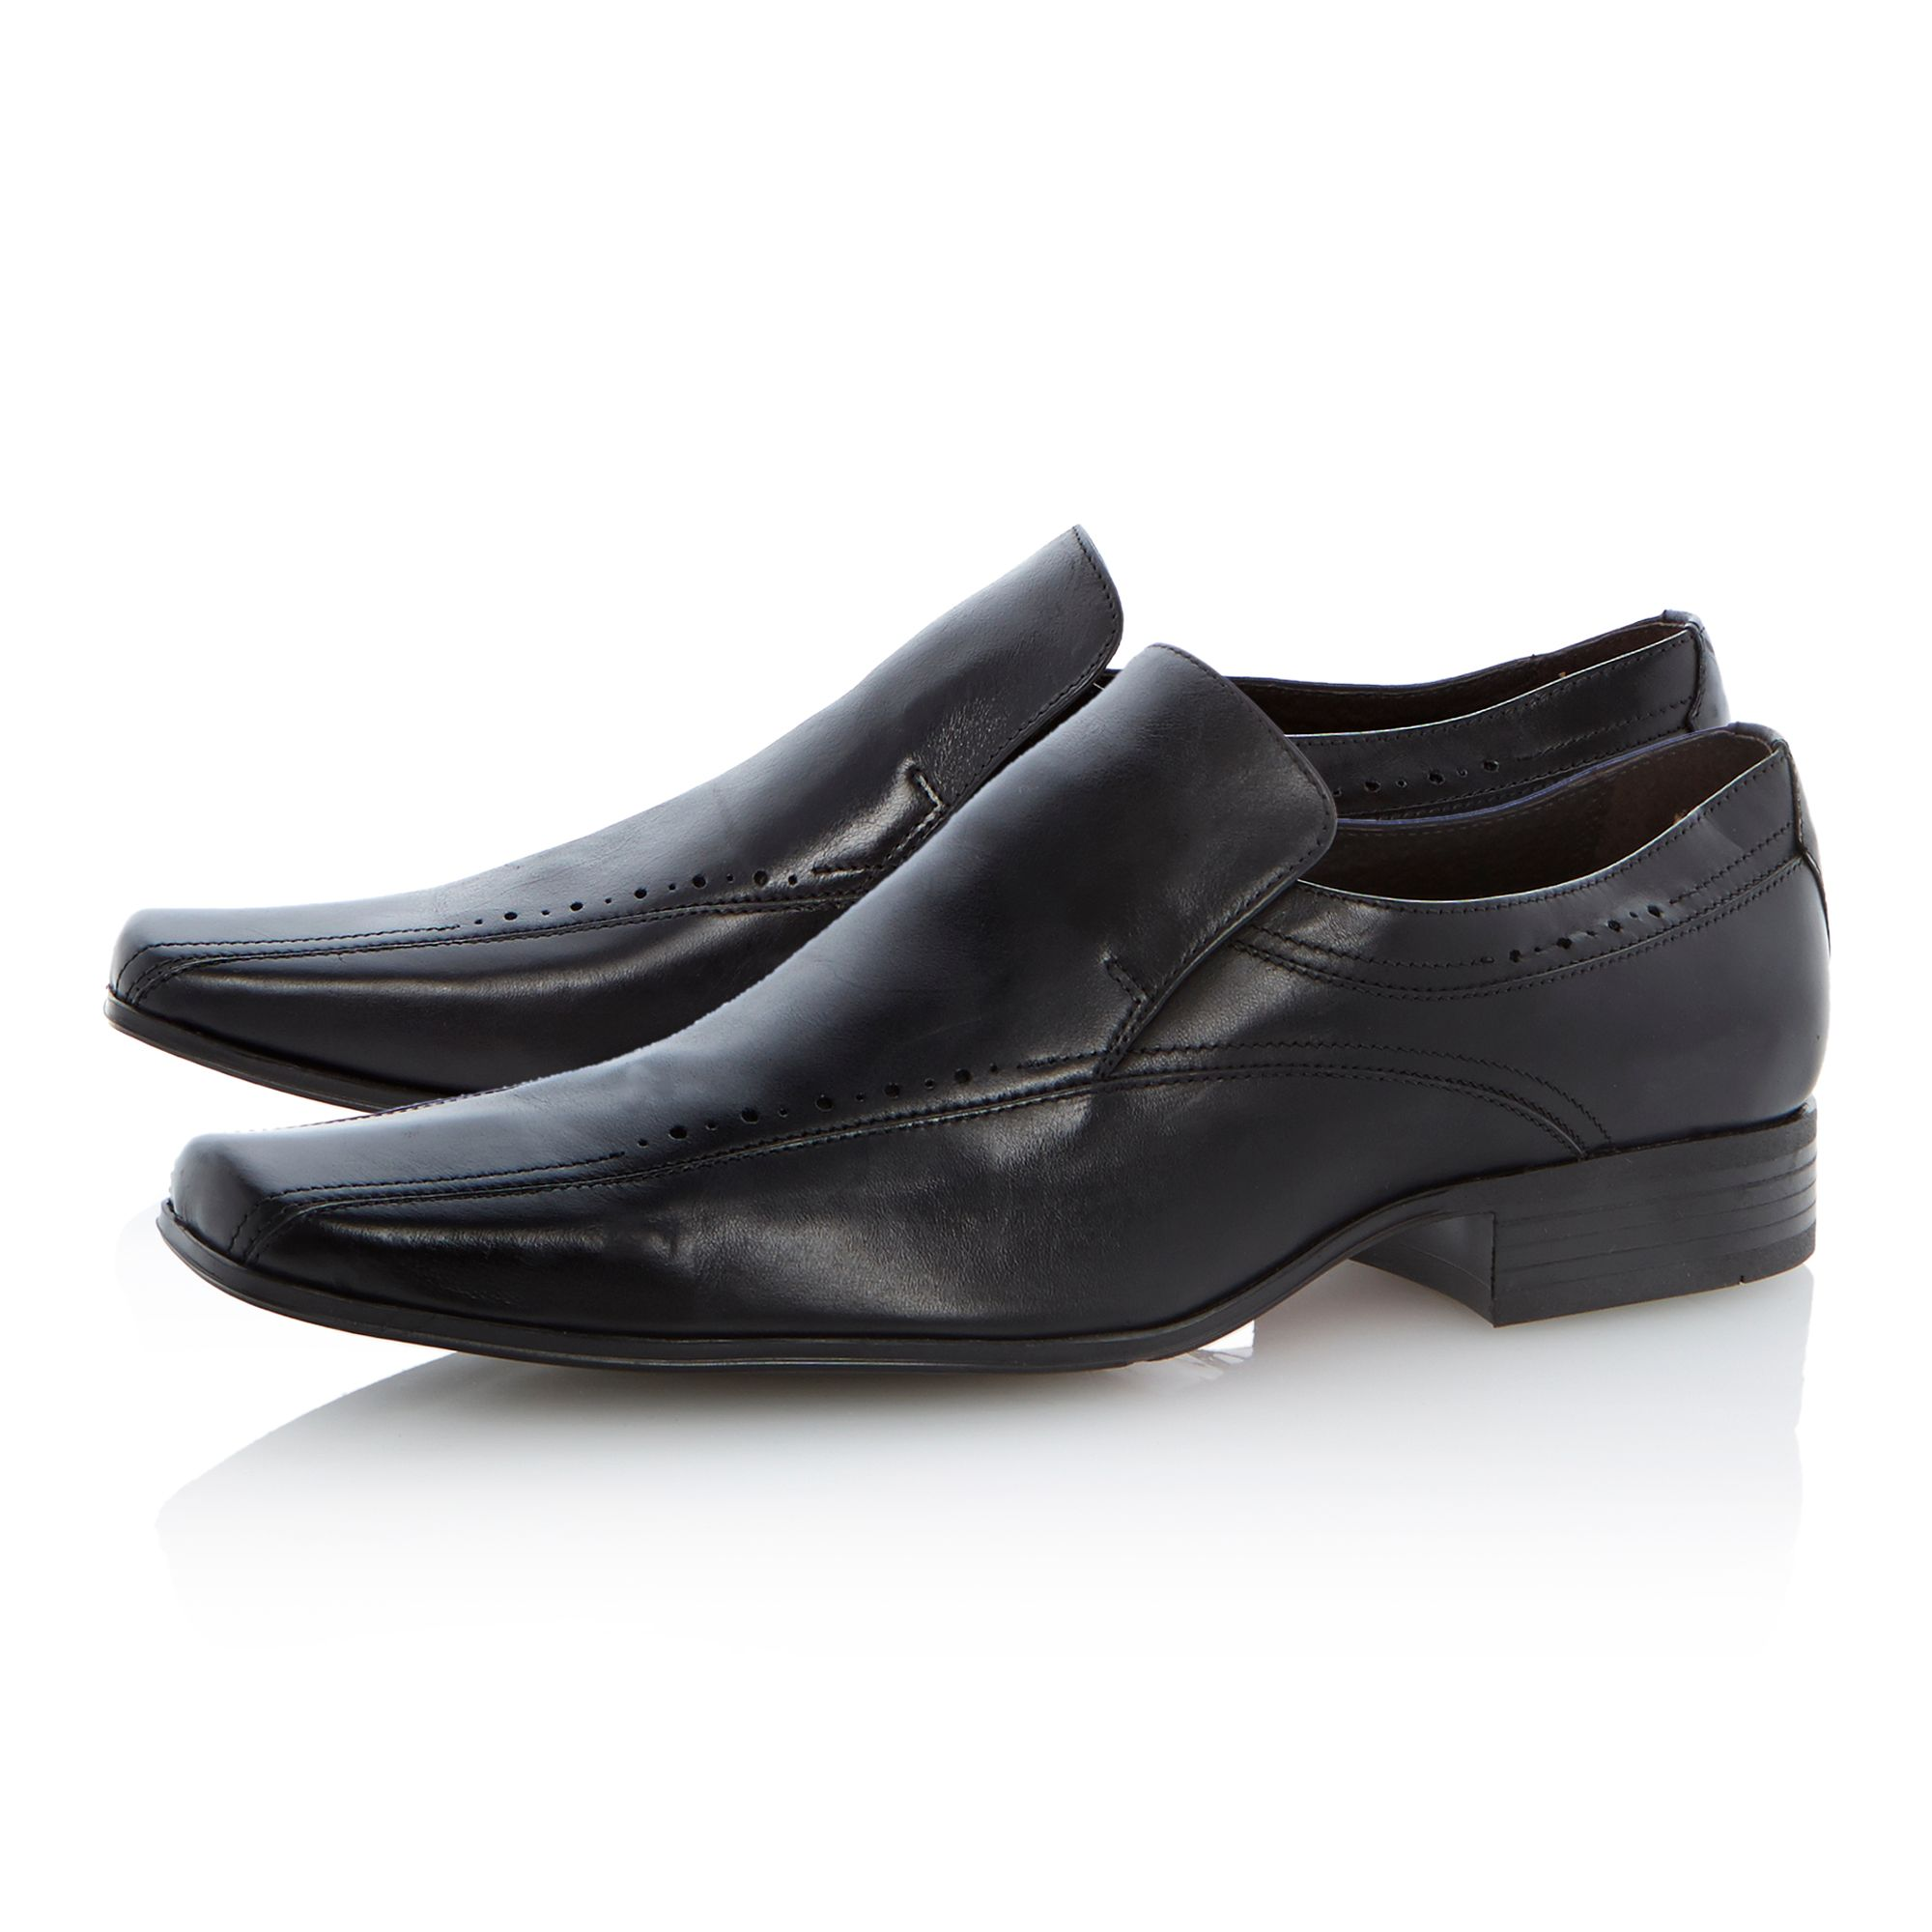 Russell sqaure lace up loafers